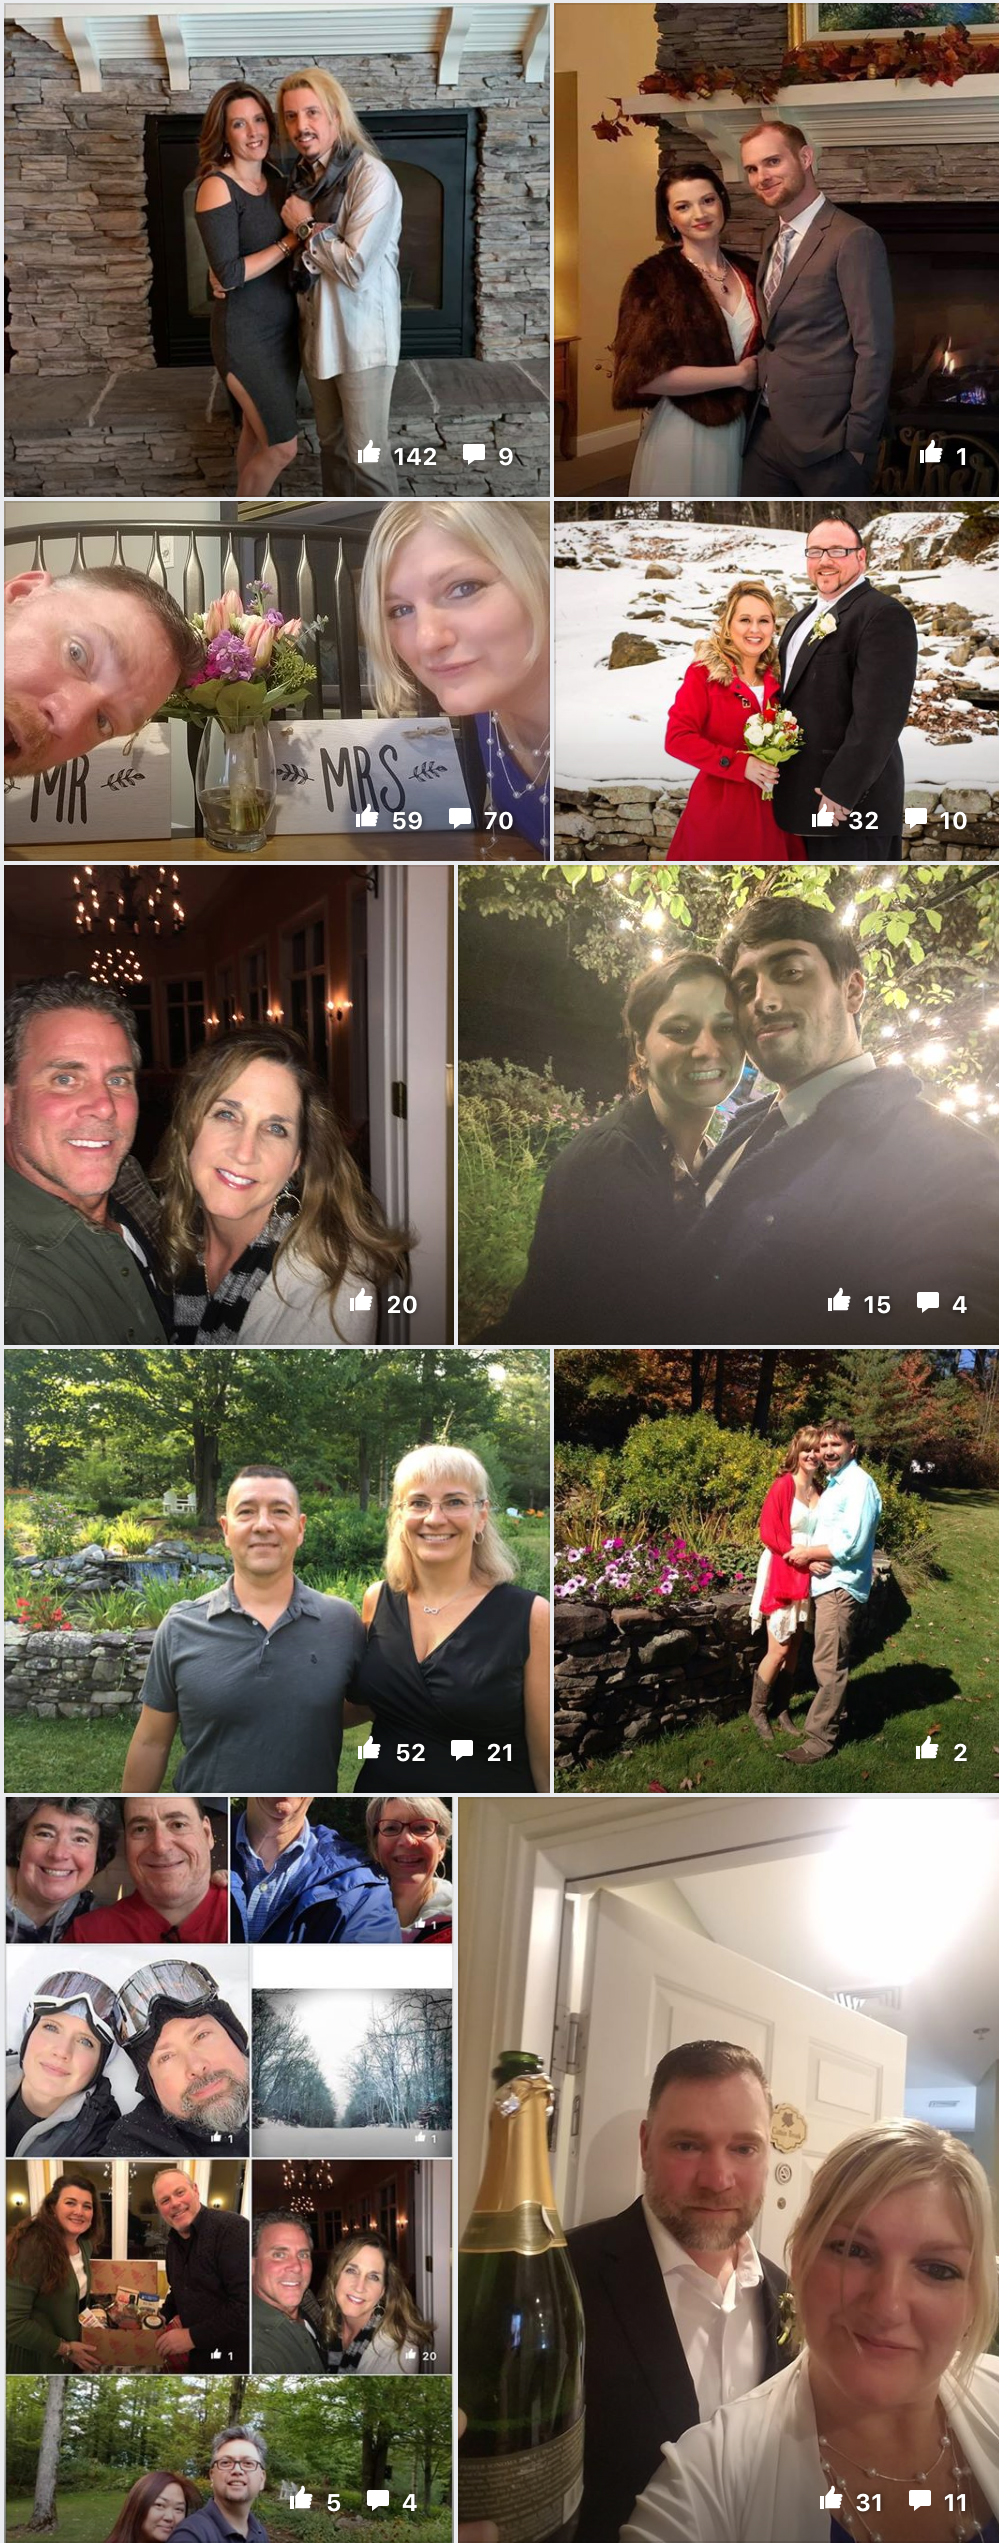 Stone Hill Inn Guest Selfie Pictures